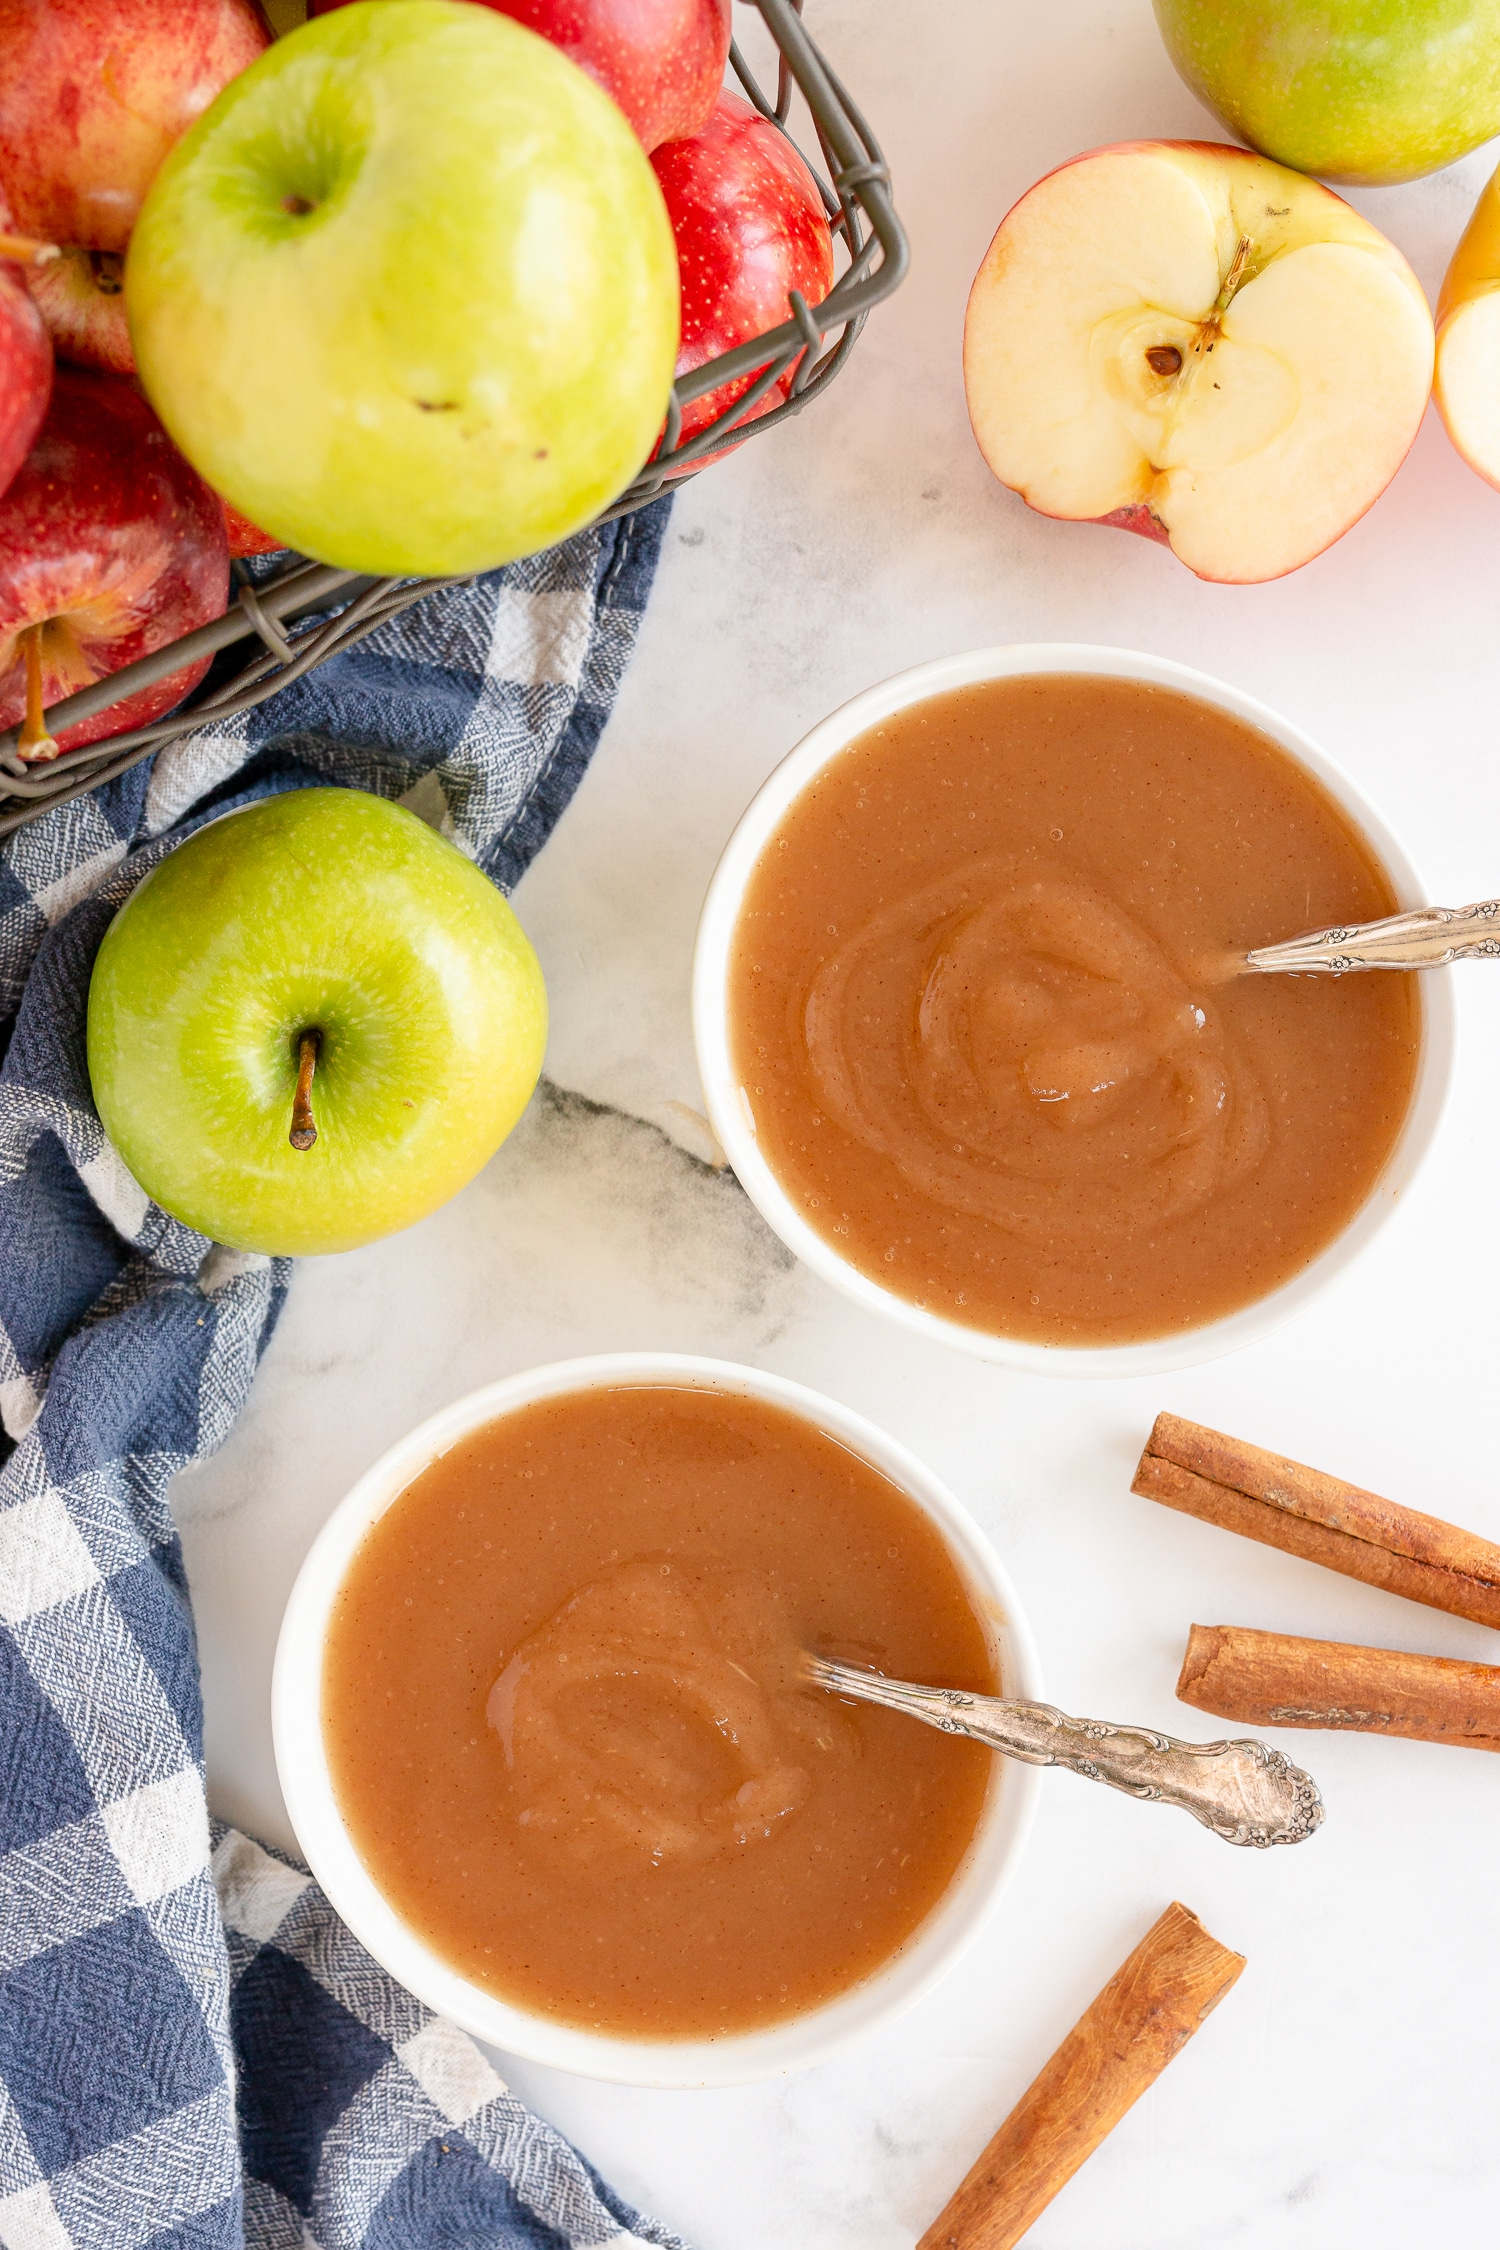 applesauce in serving bowl on kitchen counter